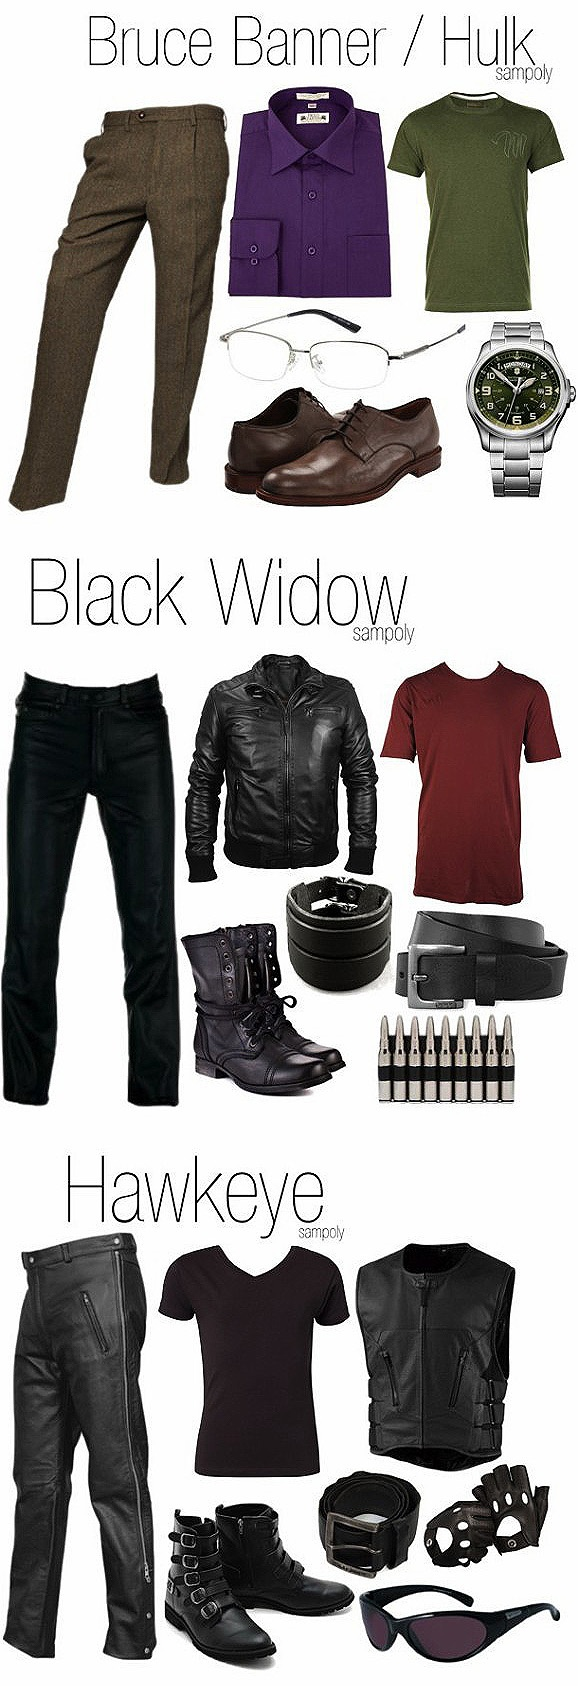 """Part 2 Men's versions of Marvel's """"The Avengers"""" outfits - Bruce Banner/Hulk, Black Widow and Hawkeye!"""